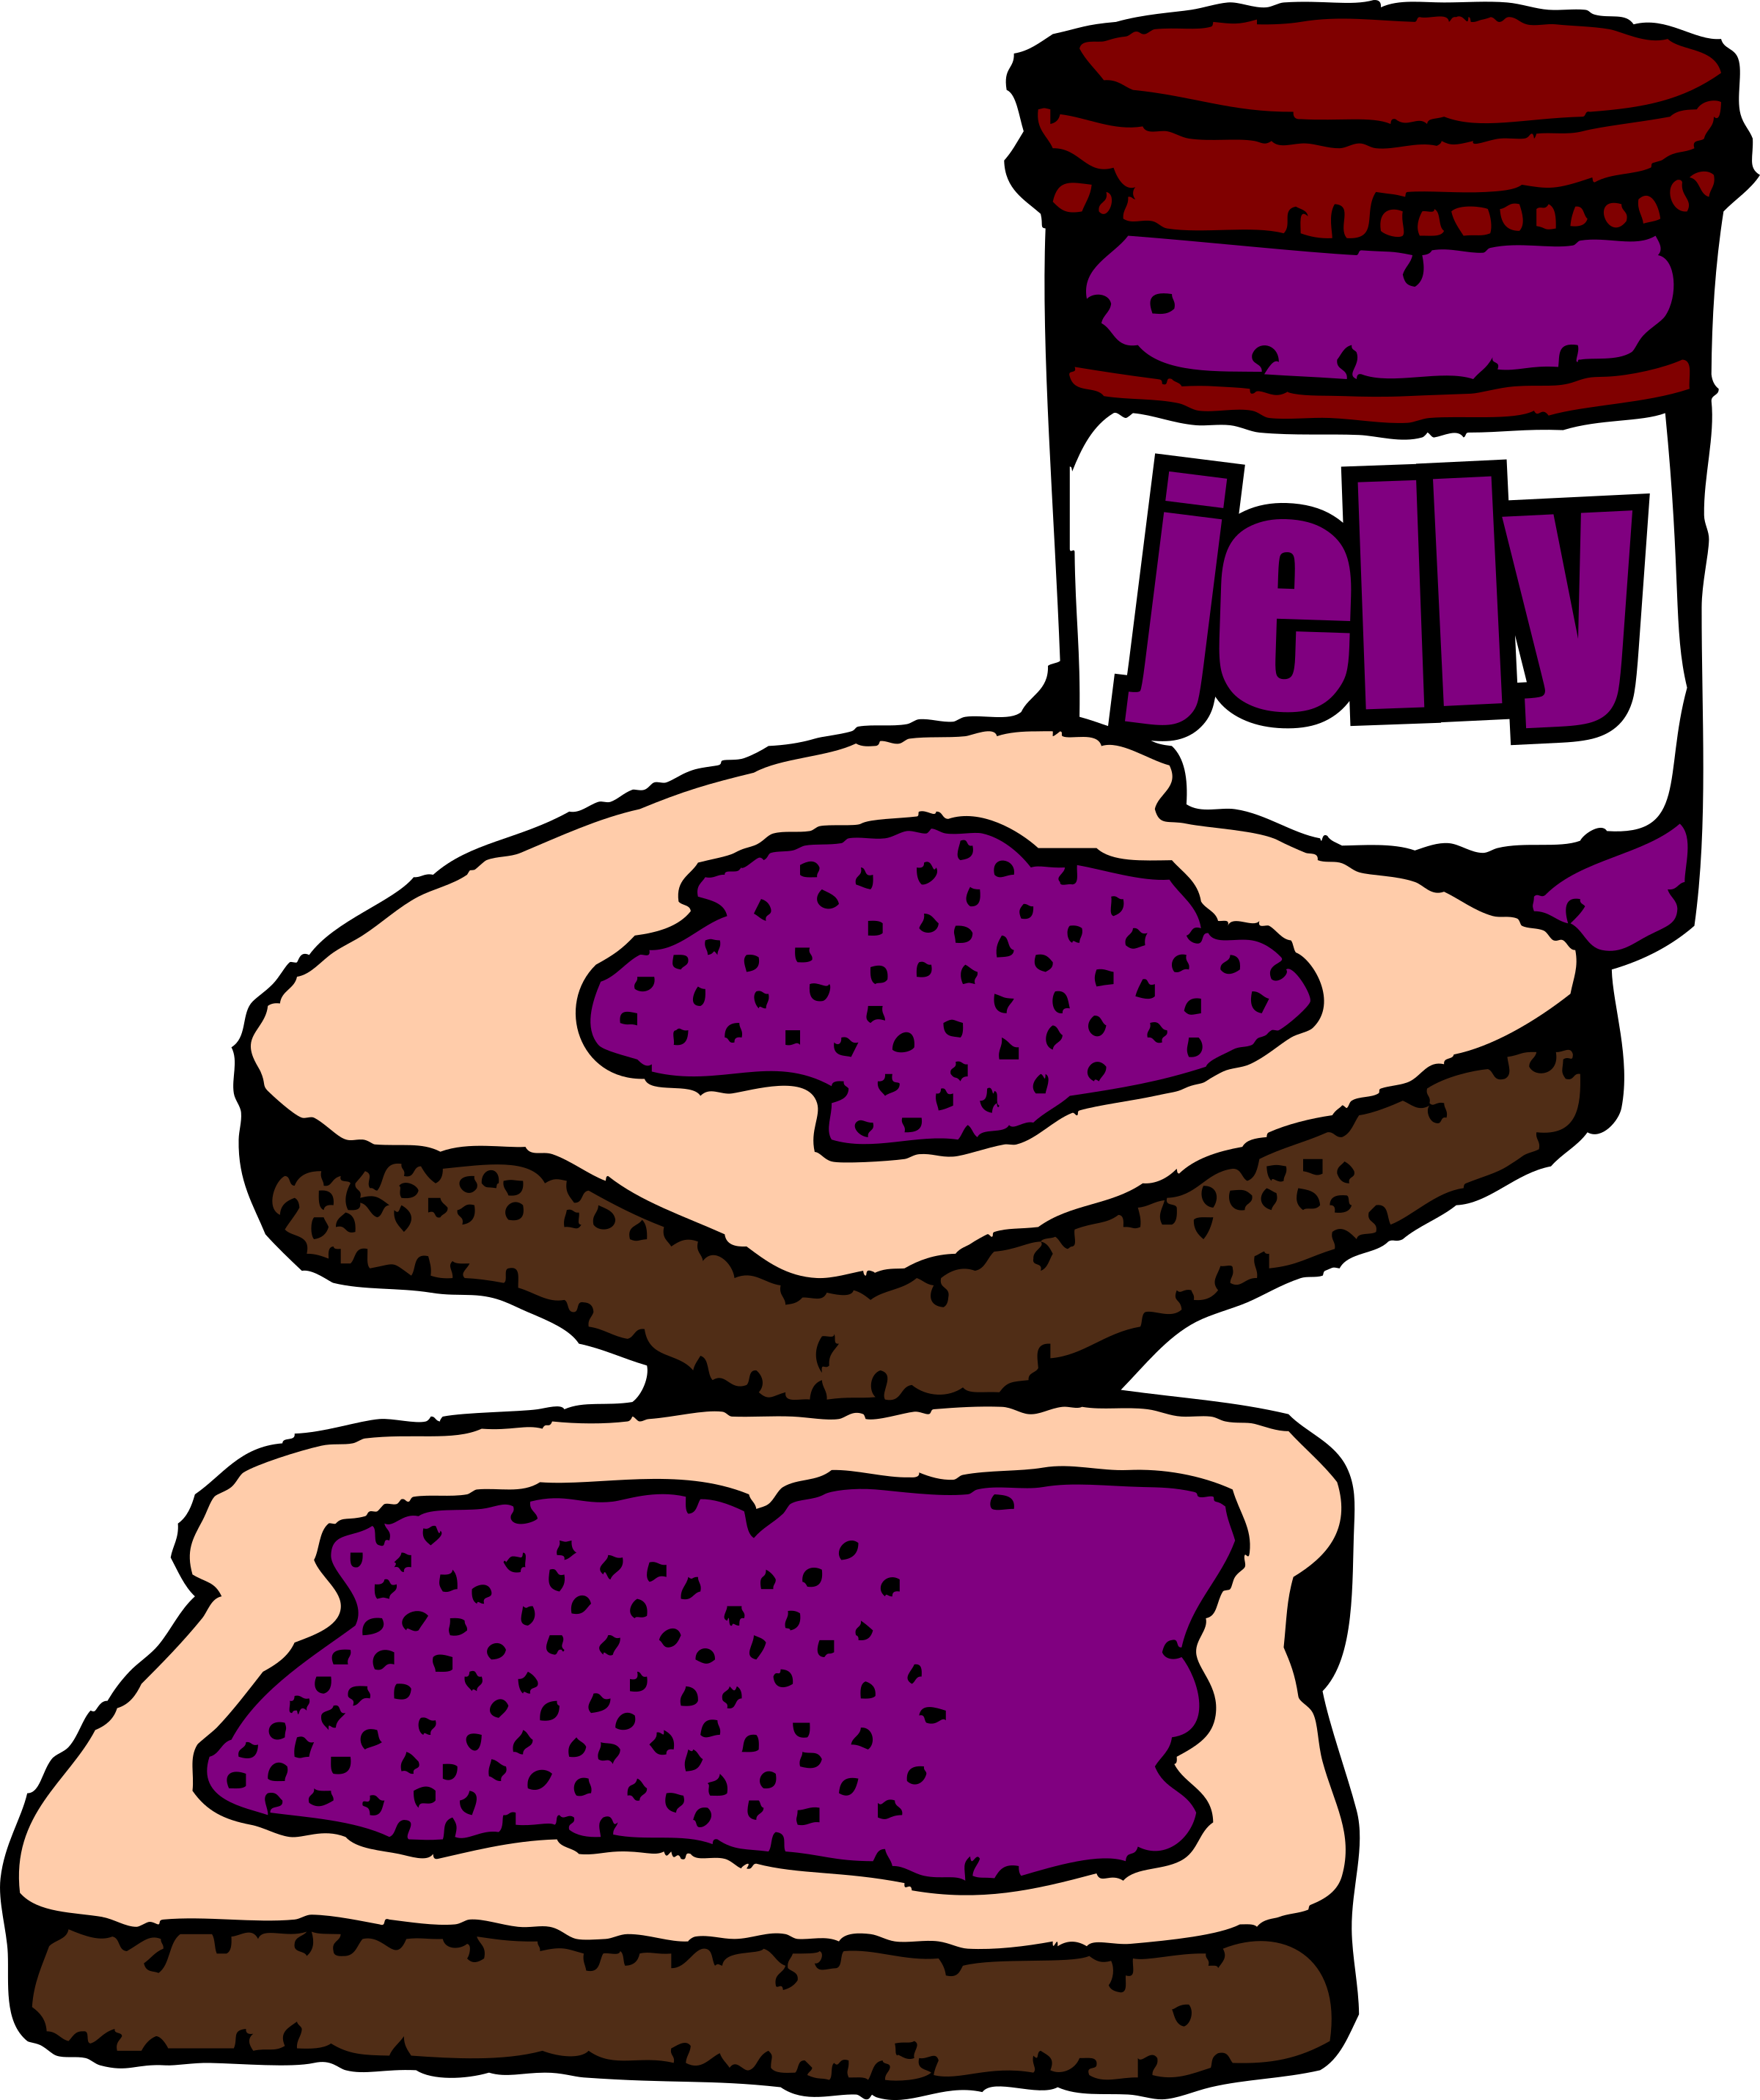 Colorized Peanut Butter And Jelly Sandwich By Snifty